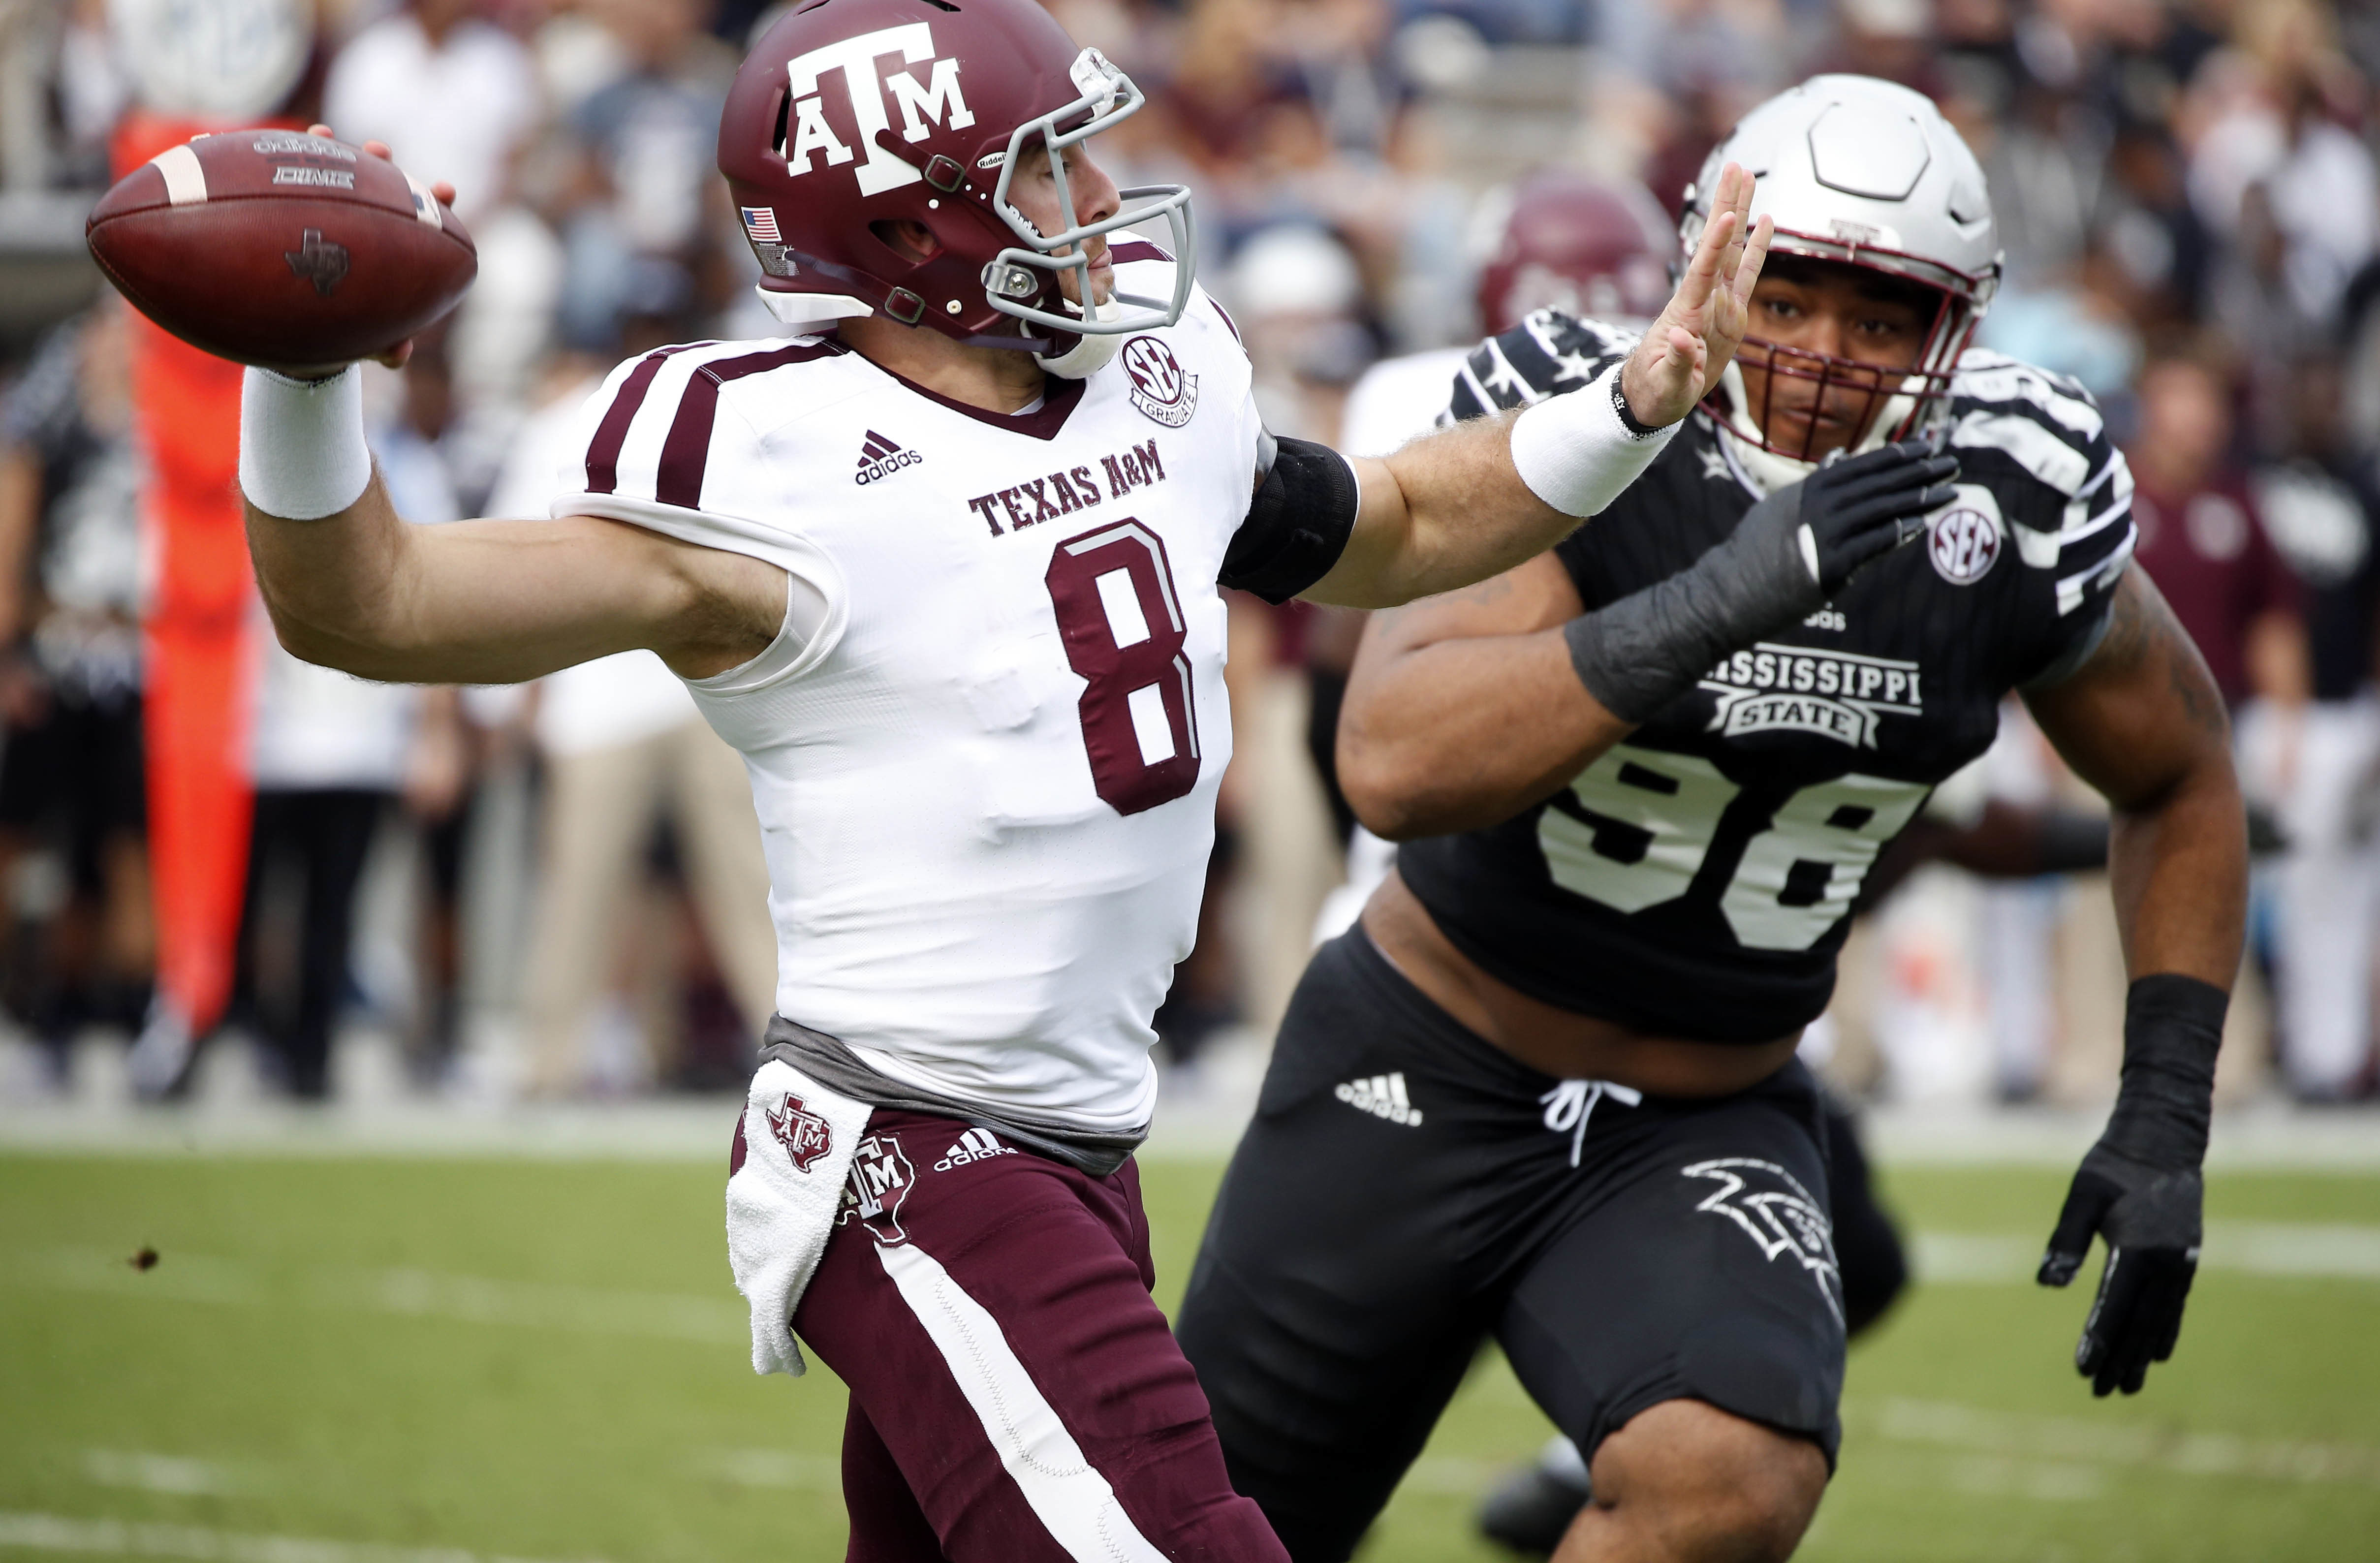 Texas A&M quarterback Trevor Knight (8) is pressured by Mississippi State defensive lineman Jeffery Simmons (98) as he passes in the first half of an NCAA college football game in Starkville, Miss., Saturday, Nov. 5, 2016. (AP Photo/Rogelio V. Solis)